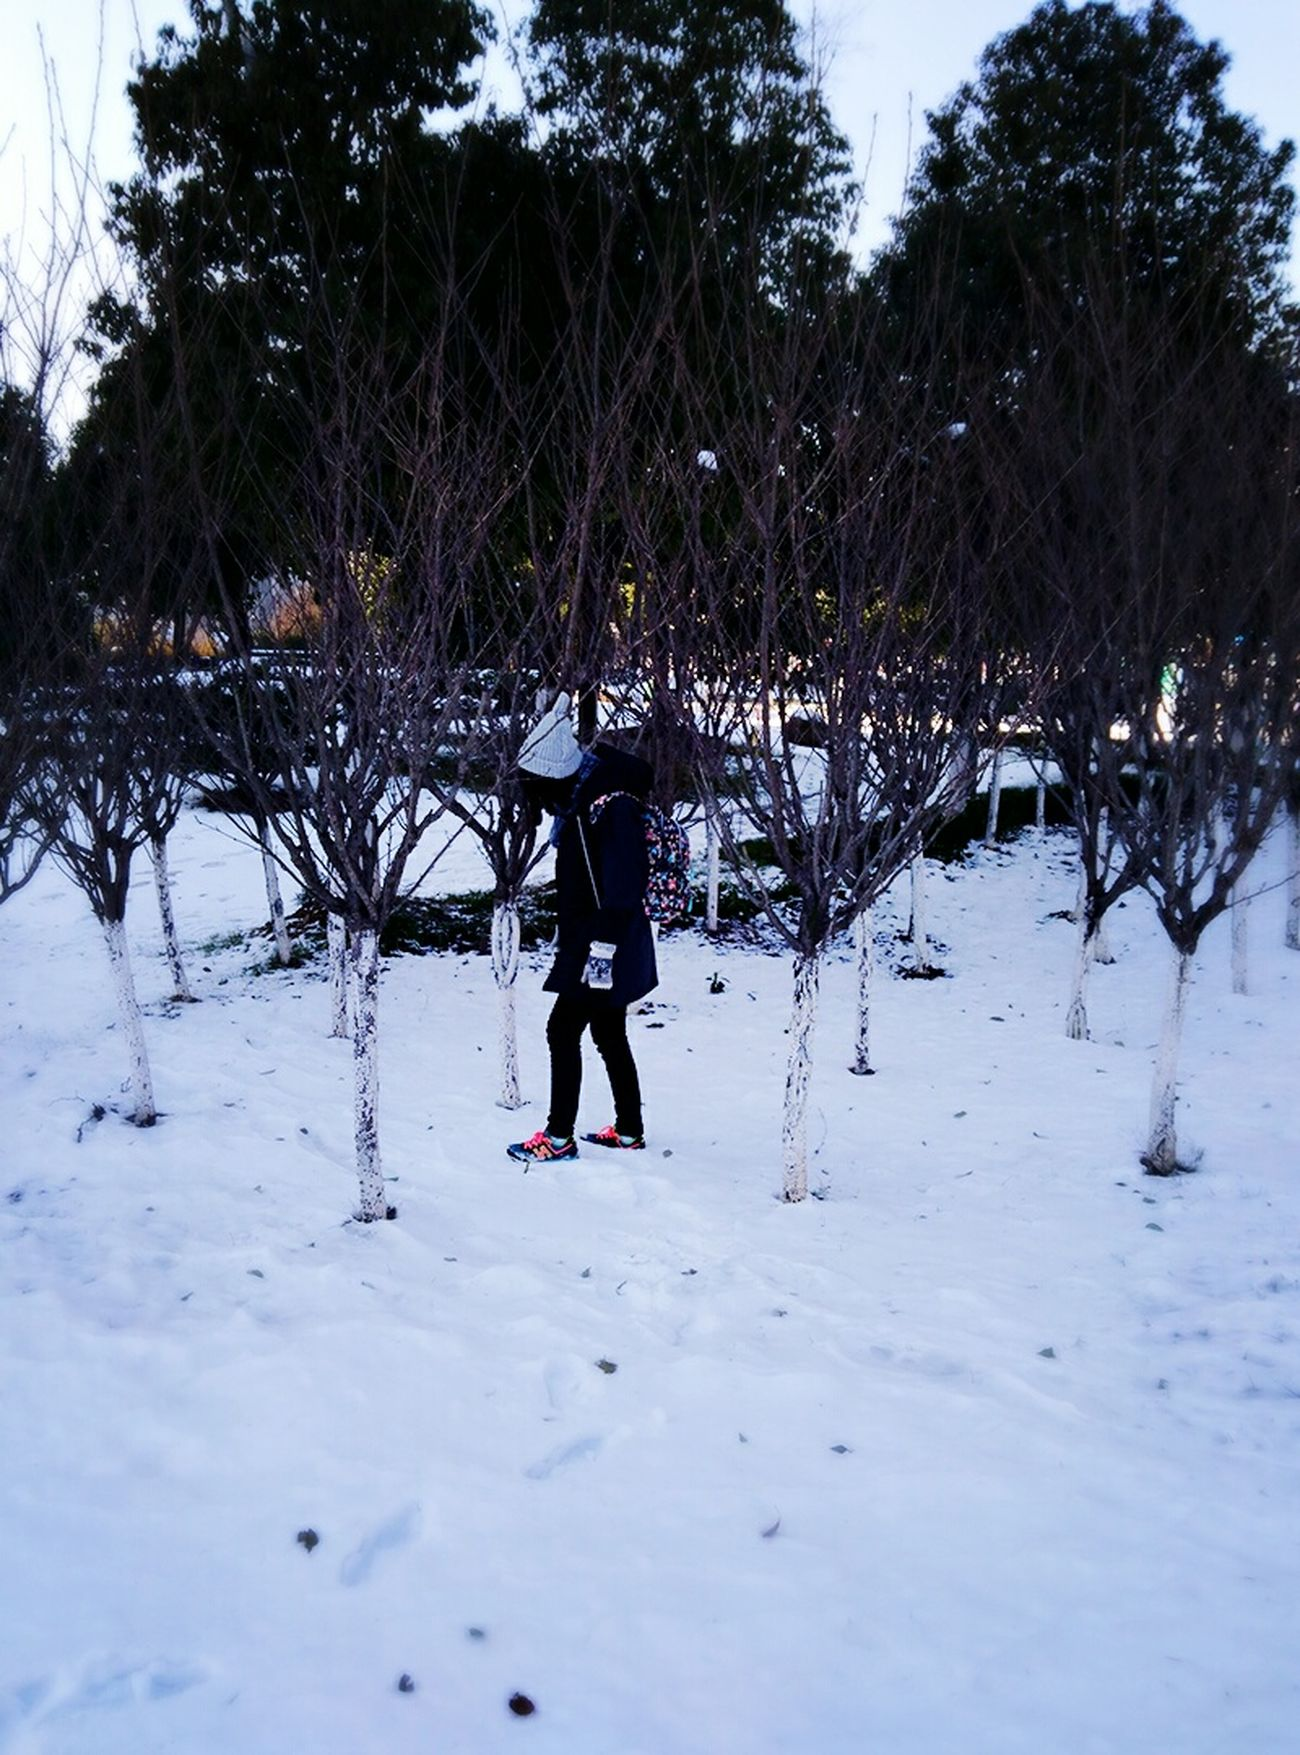 Relaxing Travel Stay Taking Photos Old Town Free Time Snowing Enjoy Life Snow ❄ Relax Nature PhonePhotography That's Me! On The Road Good Wether Life